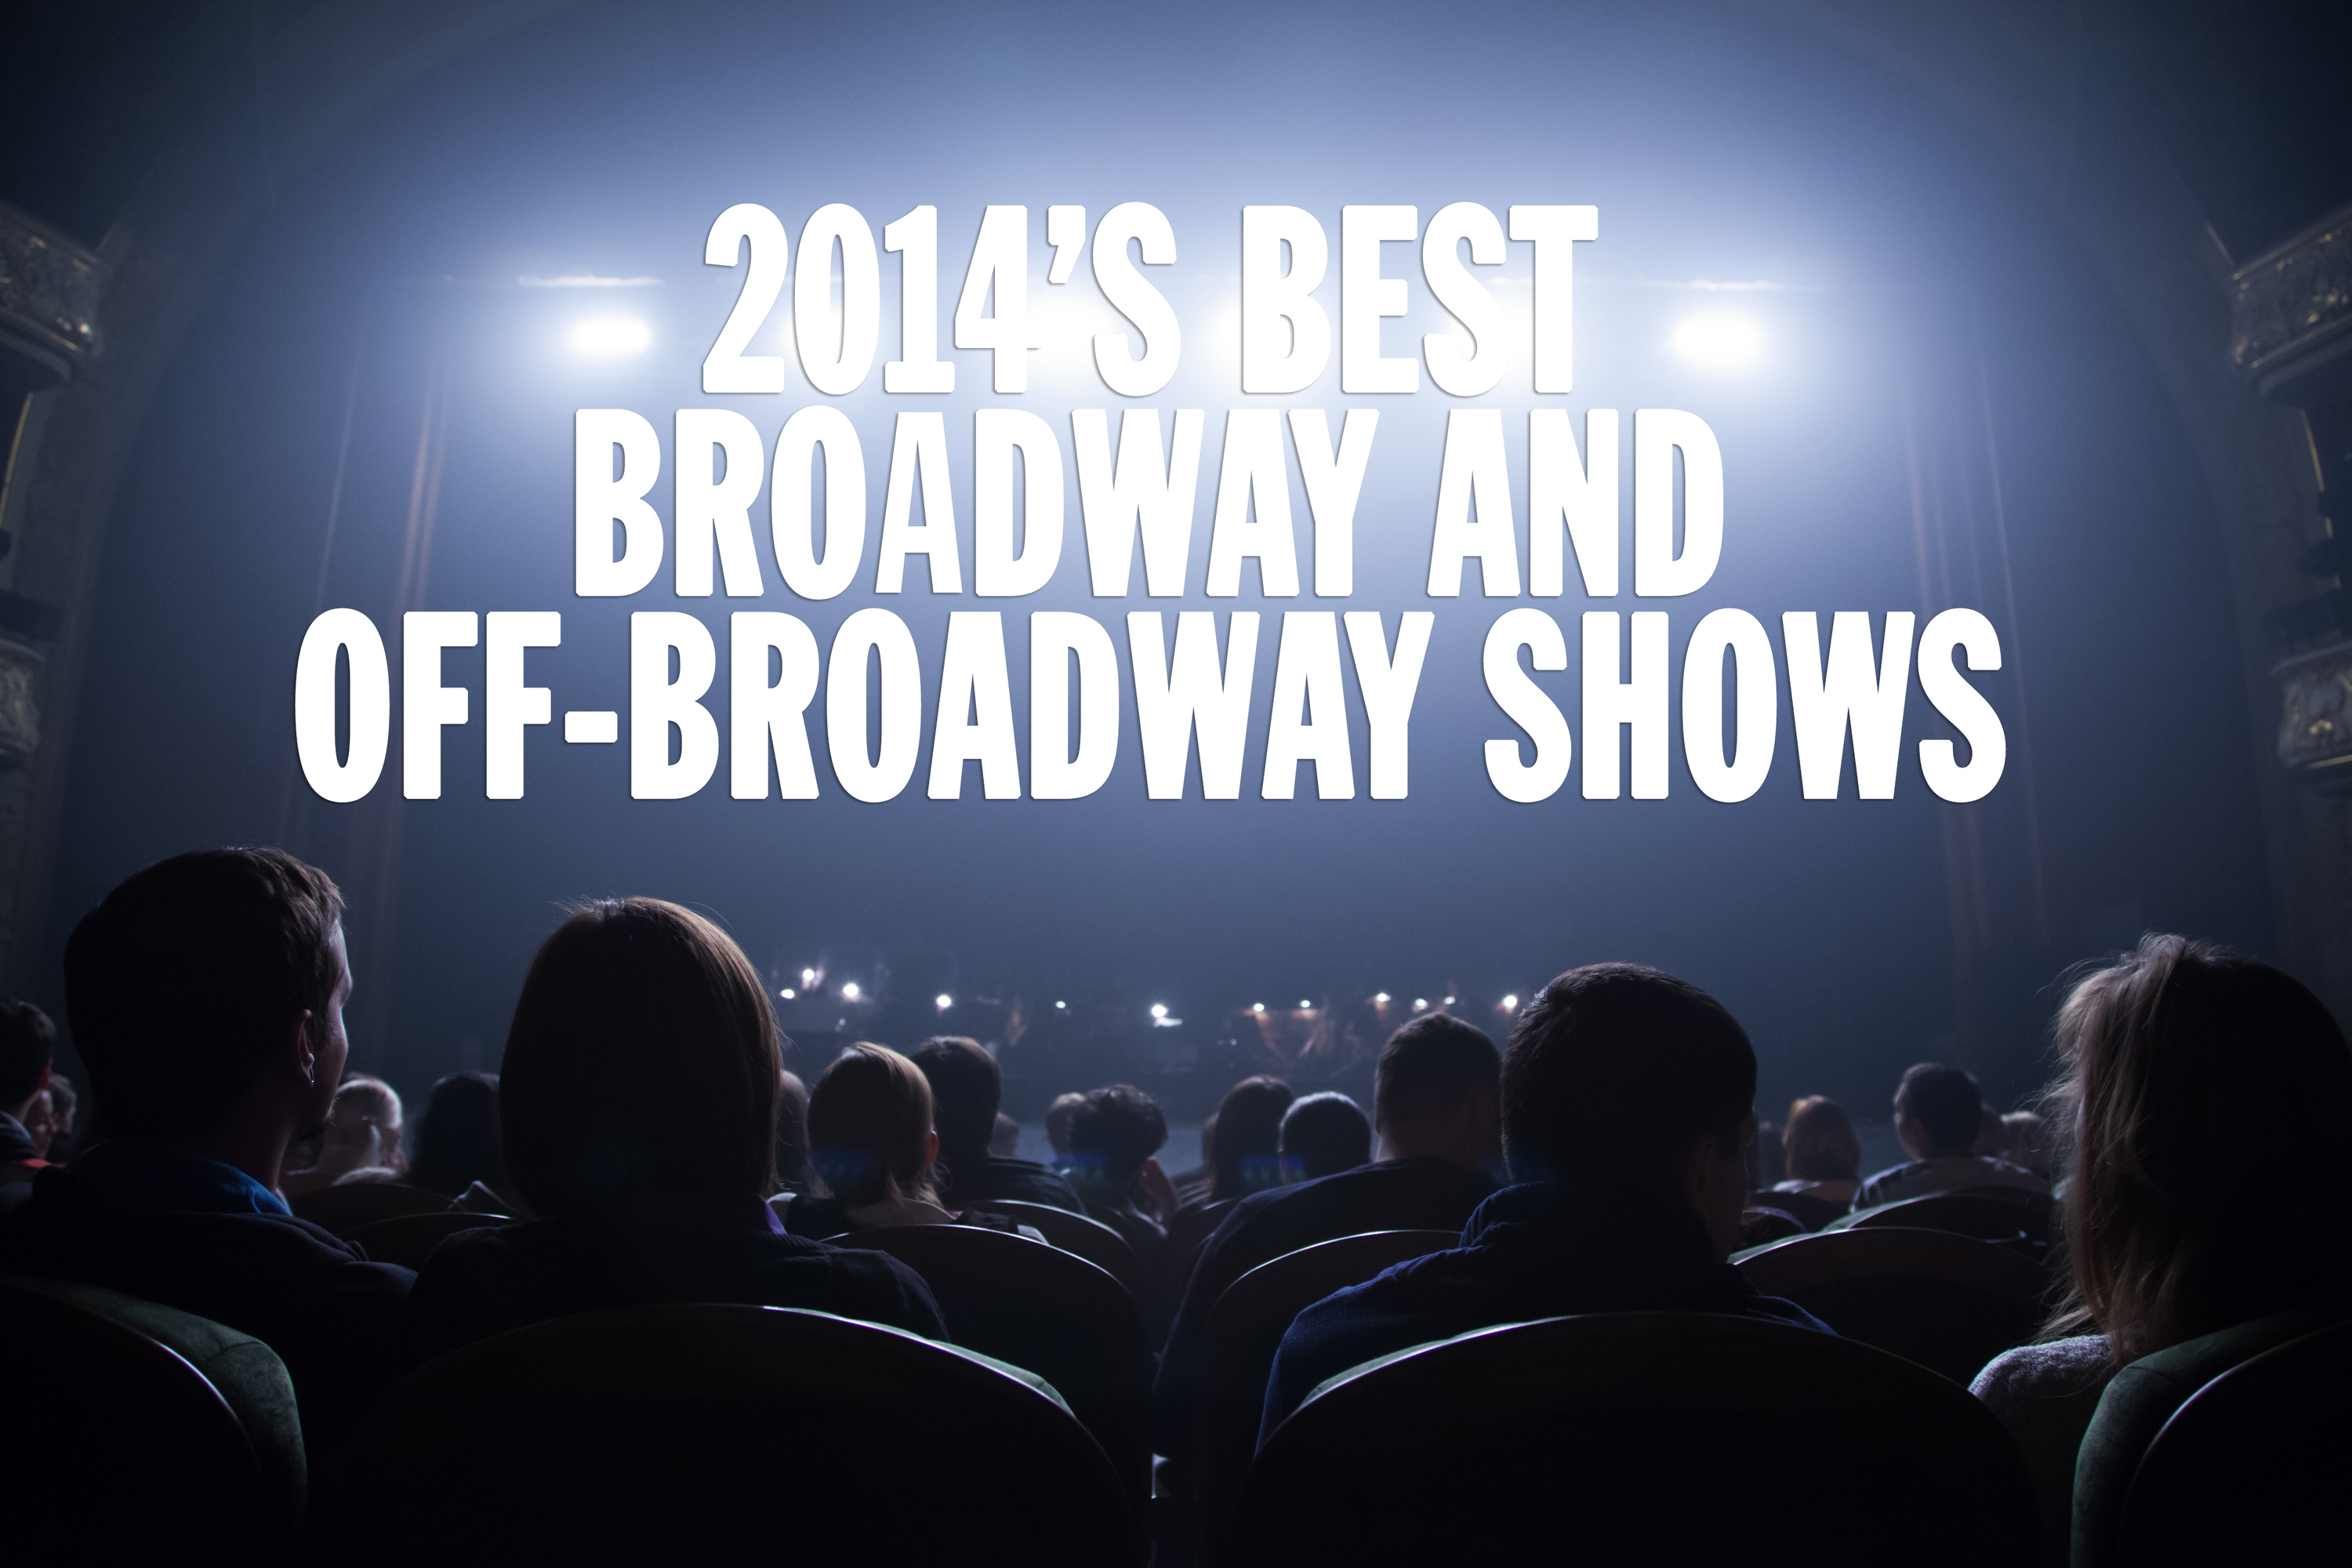 The 20 best Broadway and Off-Broadway shows of 2014